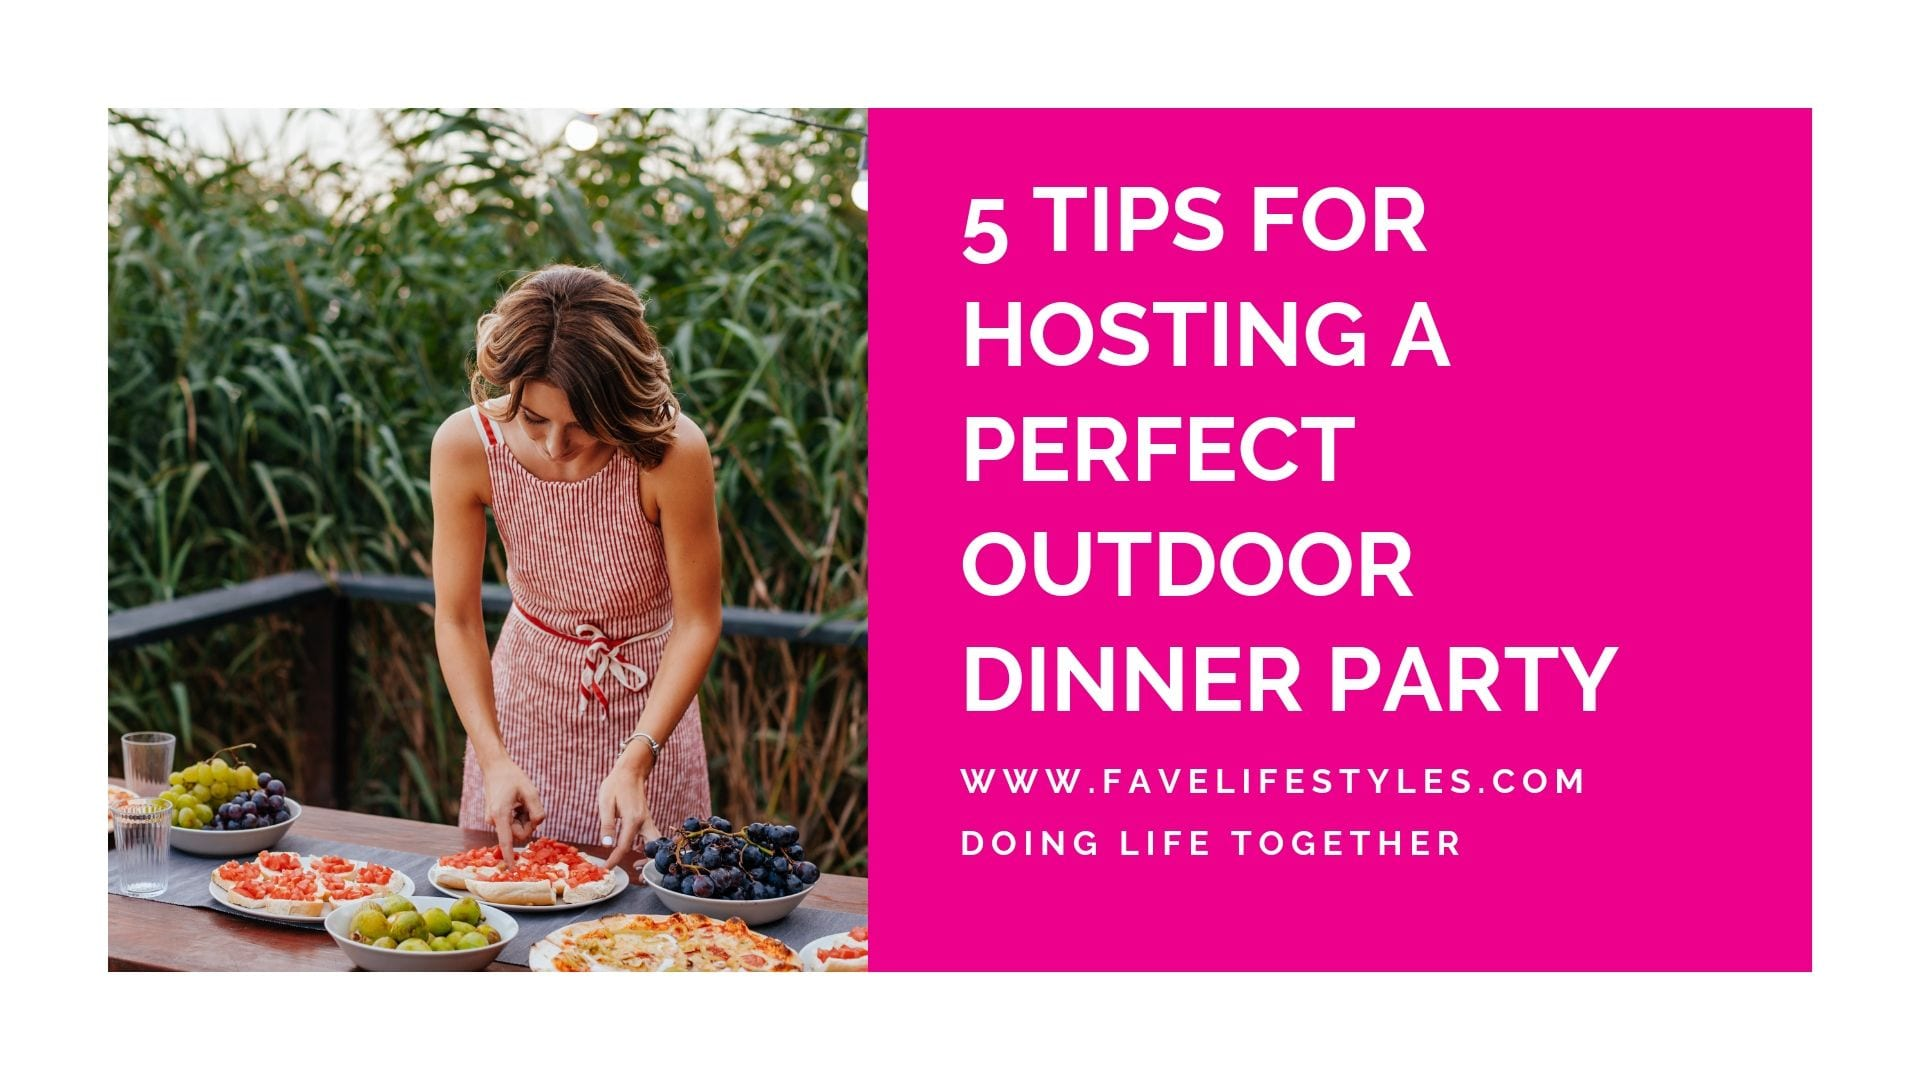 5 Tips for Hosting A Perfect Outdoor Dinner Party